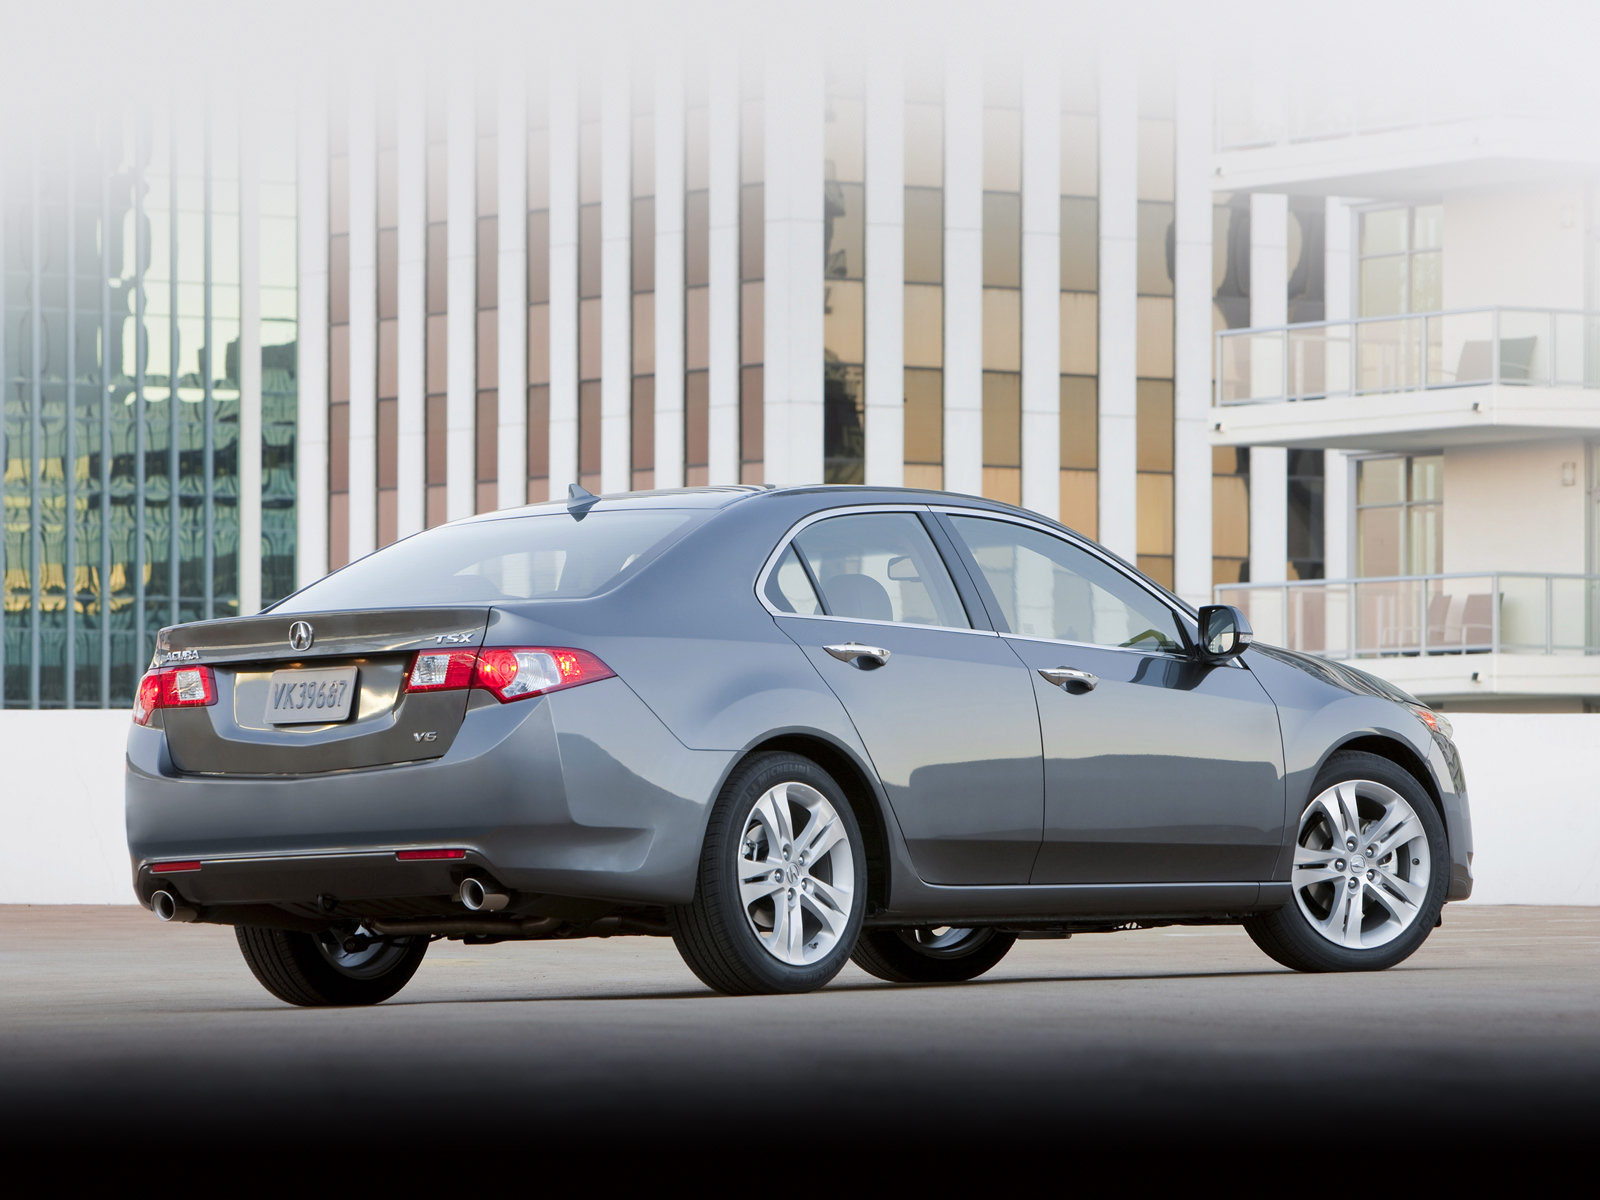 2010 acura tsx v6 japan automobiles pictures